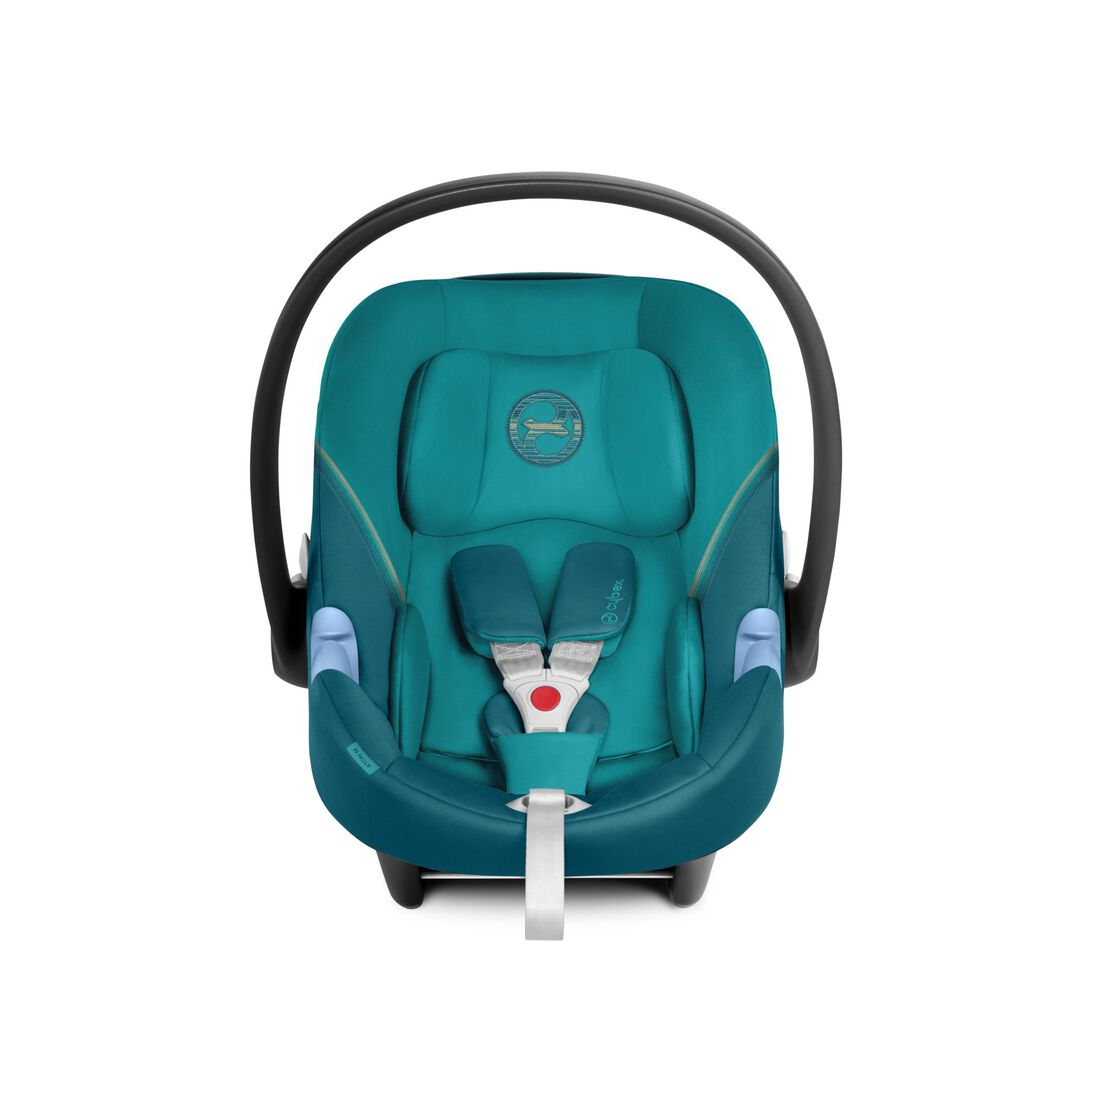 CYBEX Aton M - River Blue in River Blue large image number 2